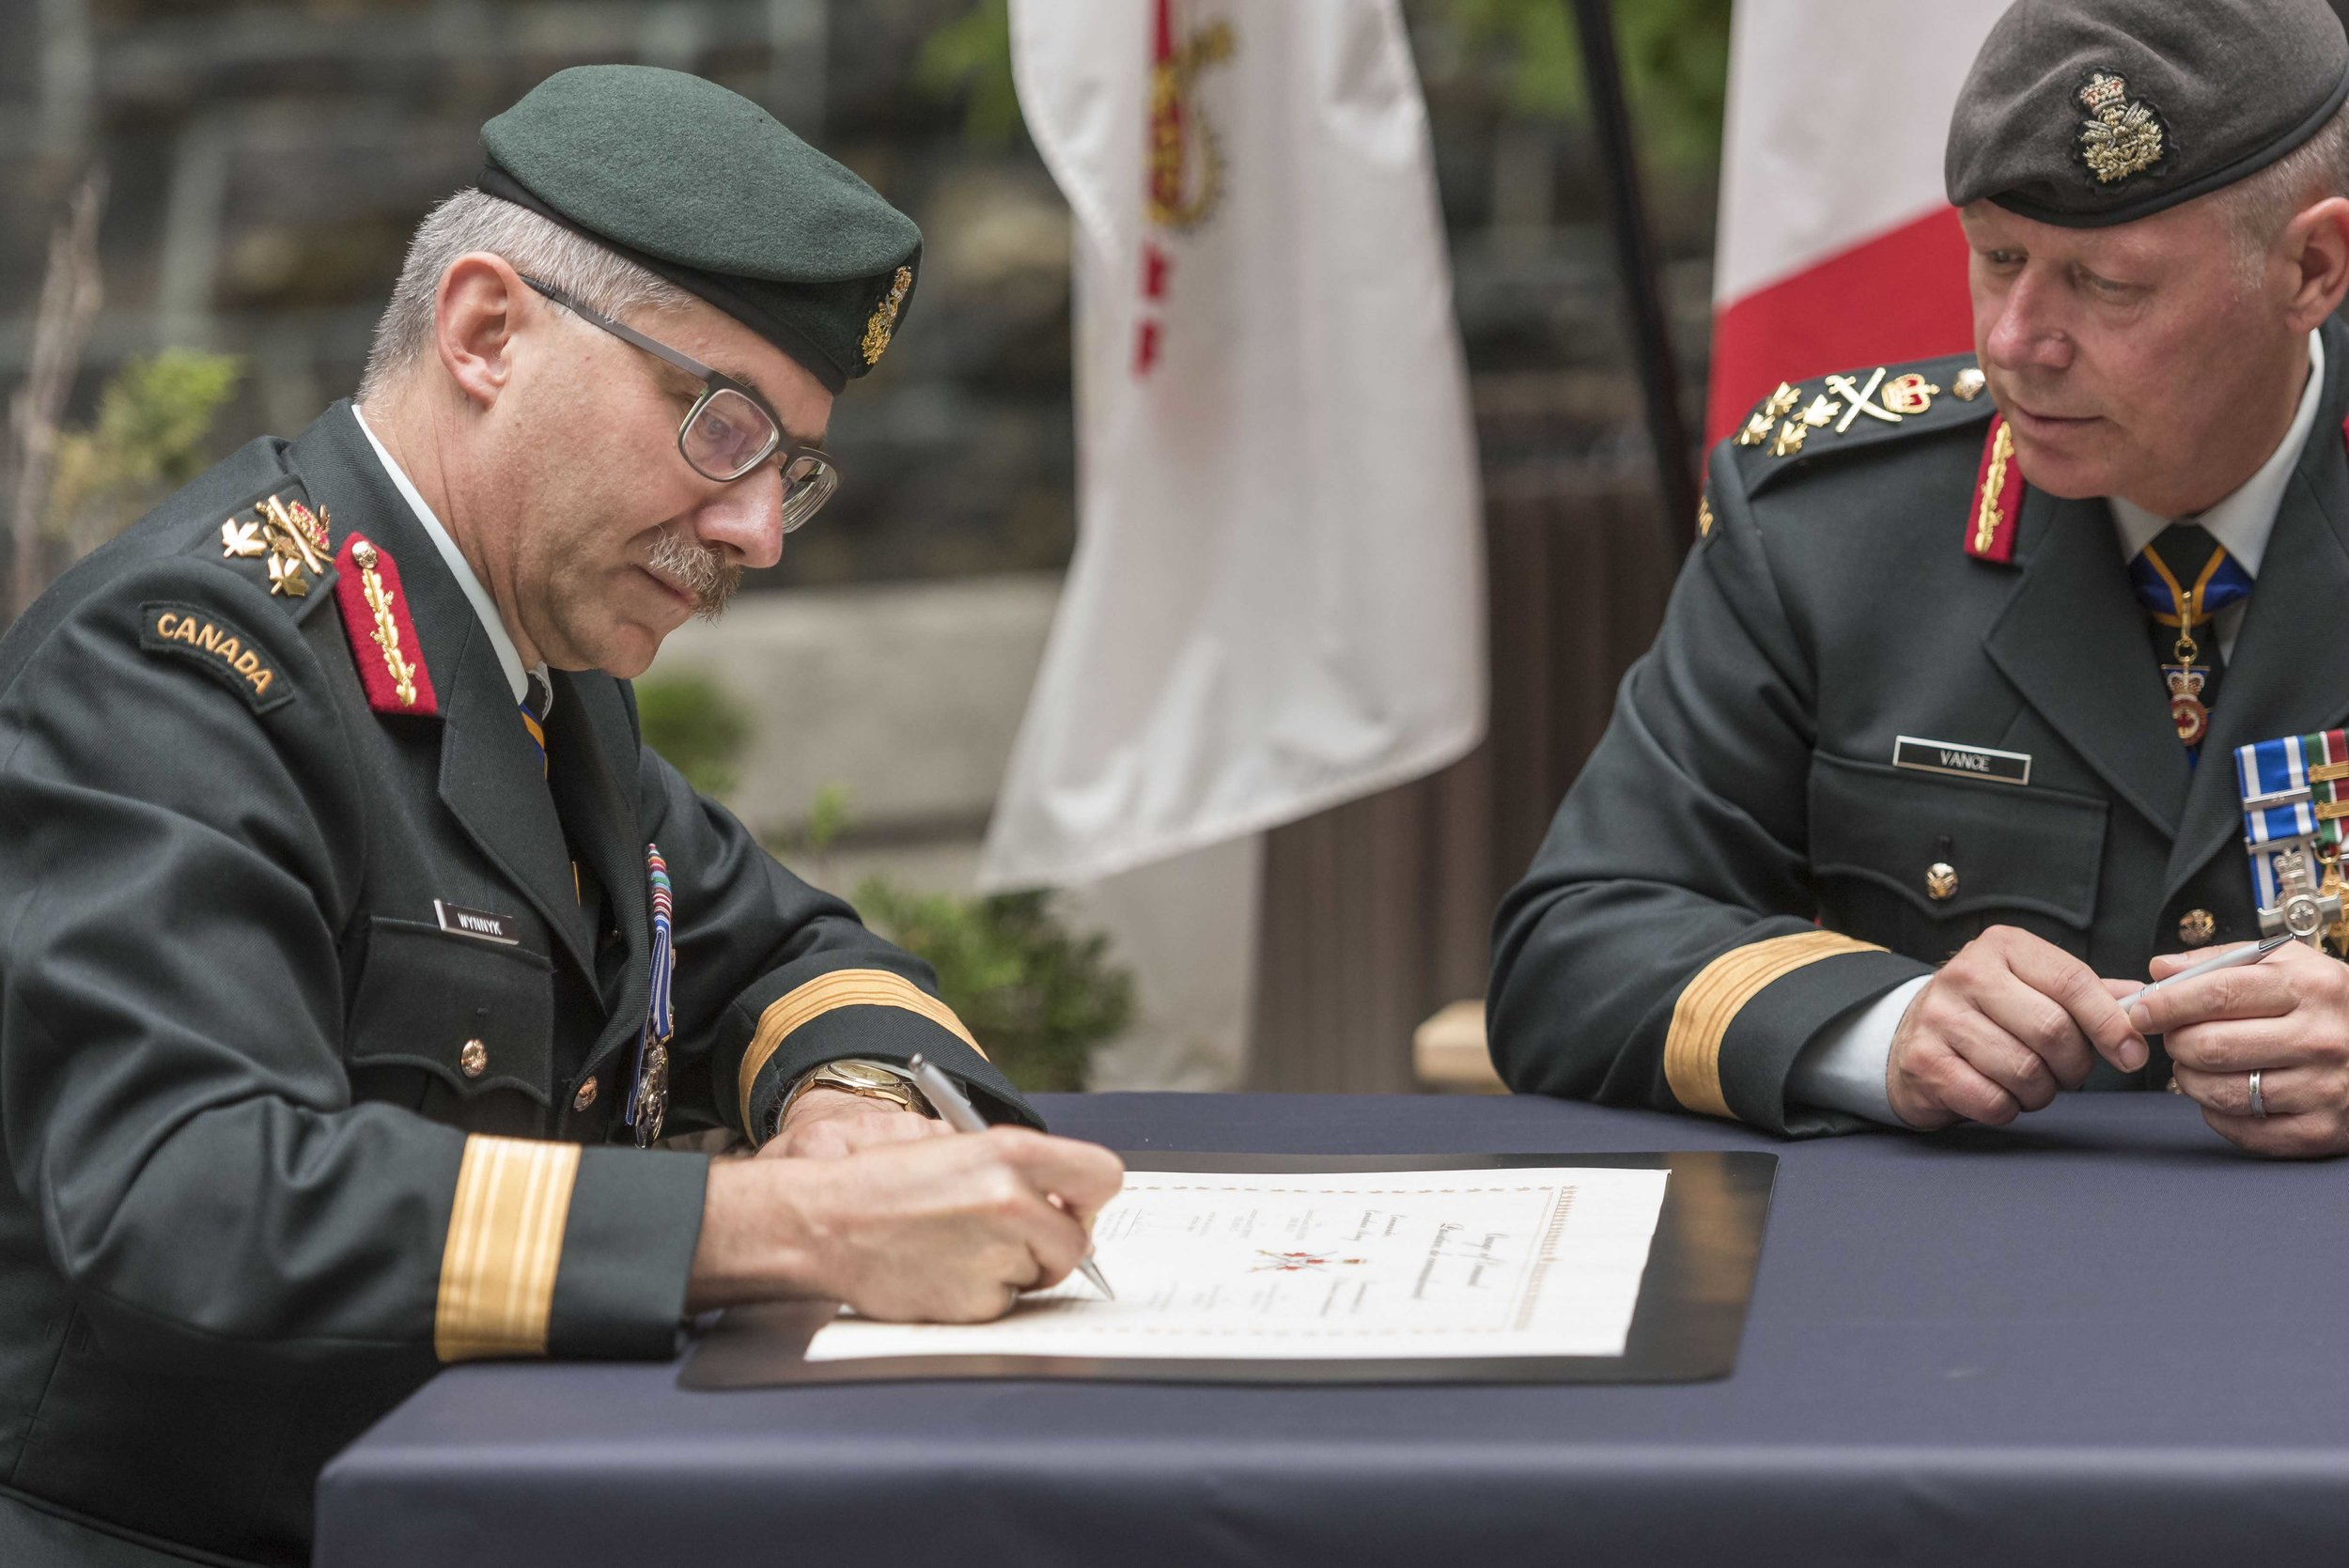 With Chief of Defence Staff General Jonathan Vance (right) looking on, LGen Paul Wynnyk (left) signs the official scroll that hands over the leadership of the Canadian Army to him from his predecessor, LGen Hainse, during the Commander Canadian Army Change of Command Ceremony. (cpl andrew wesley, directorate army public affairs)